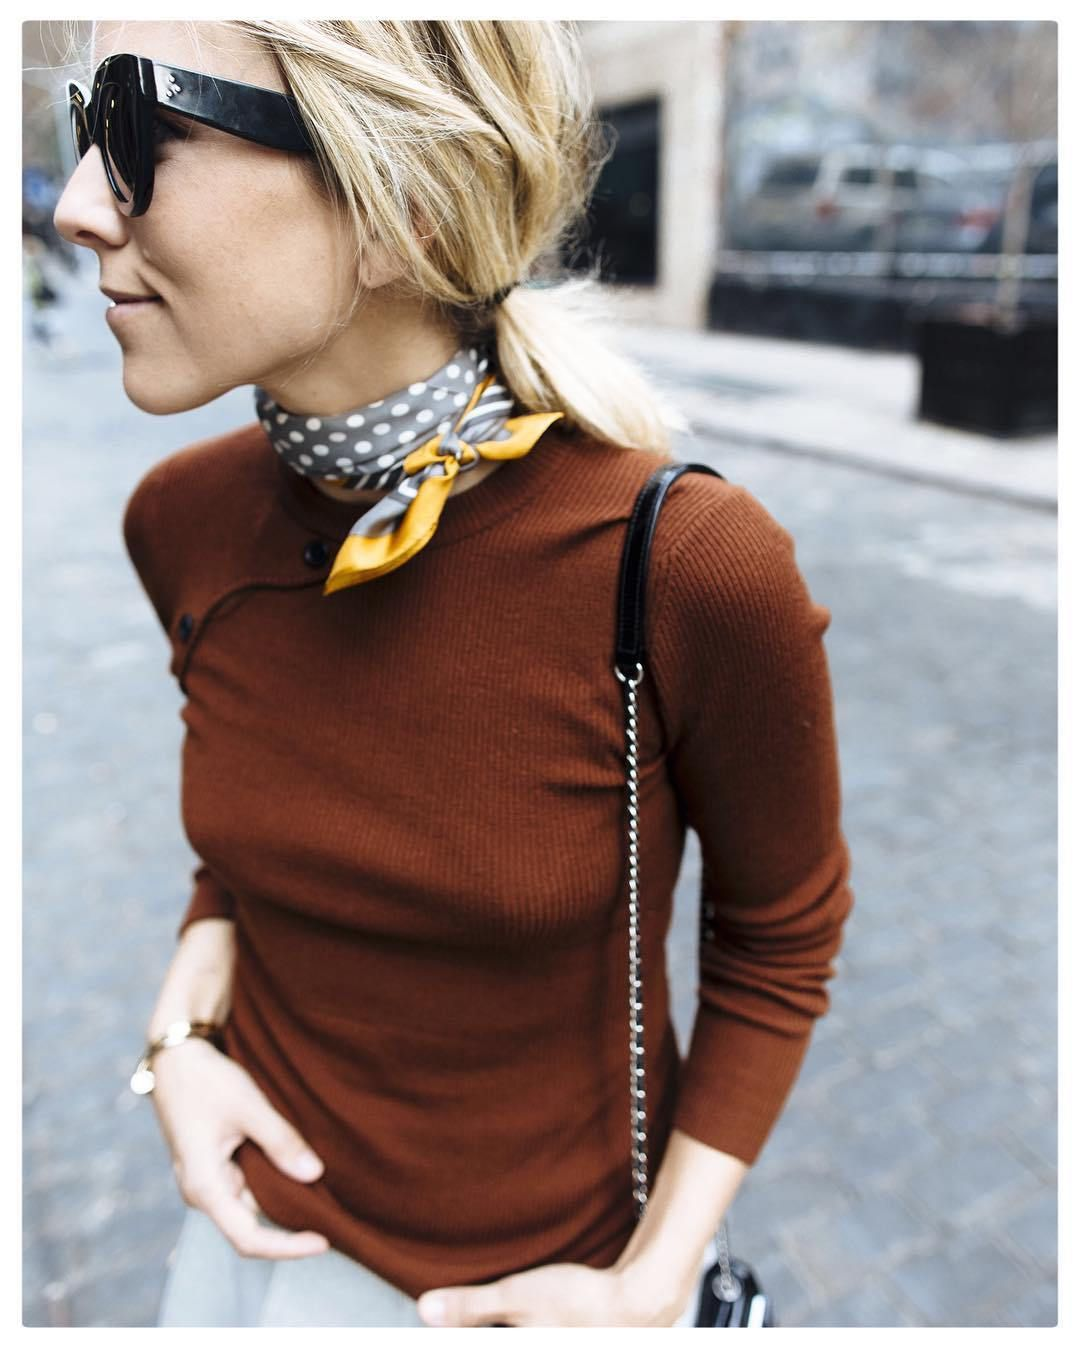 24 Ways to Wear A Scarf Fashion, Scarf styles, How to